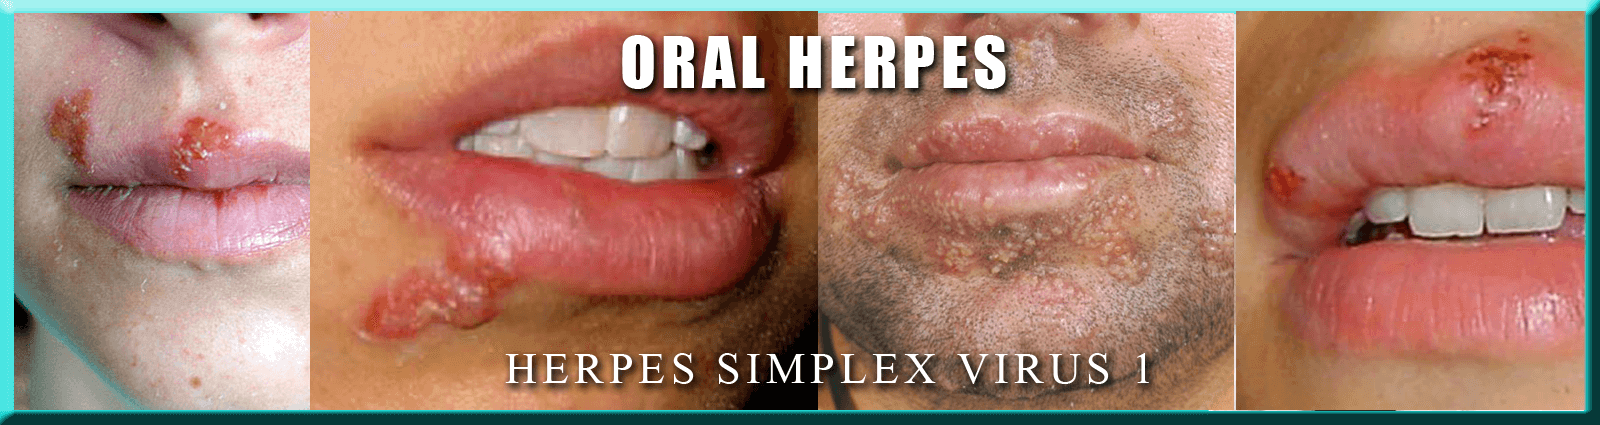 Hookup someone who has oral herpes